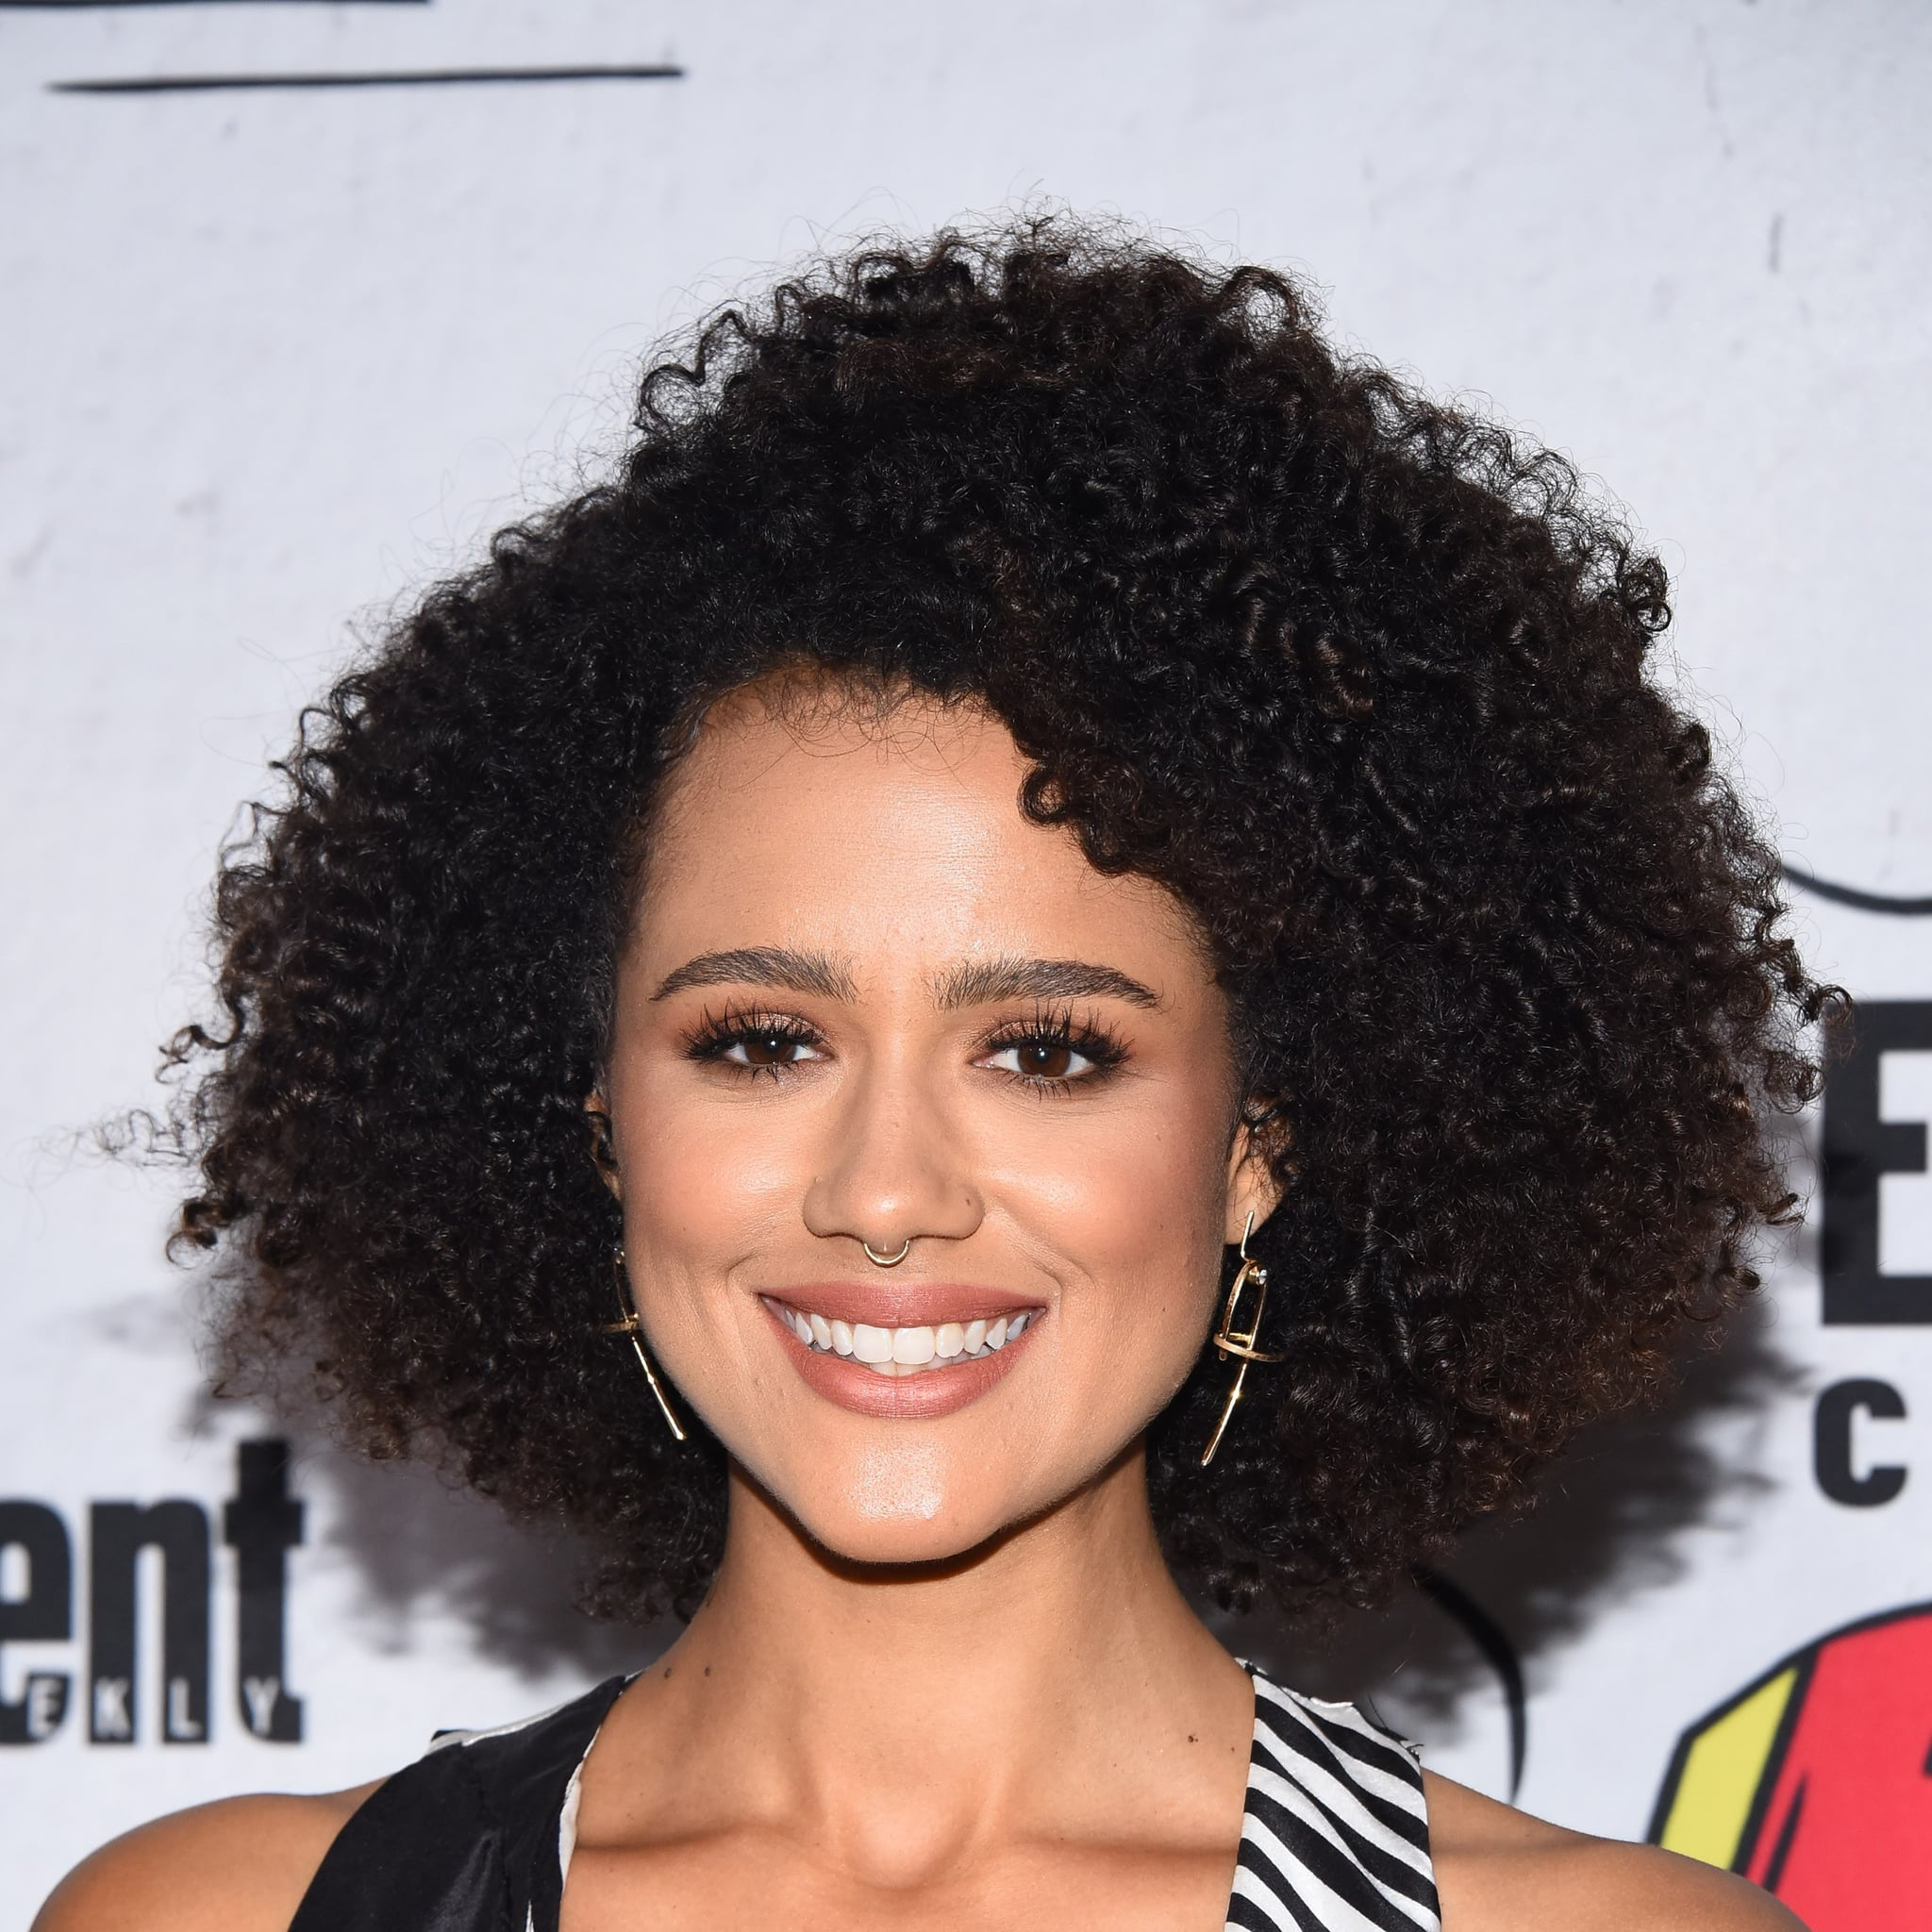 nathalie emmanuel posts makeup-free selfie | popsugar beauty uk